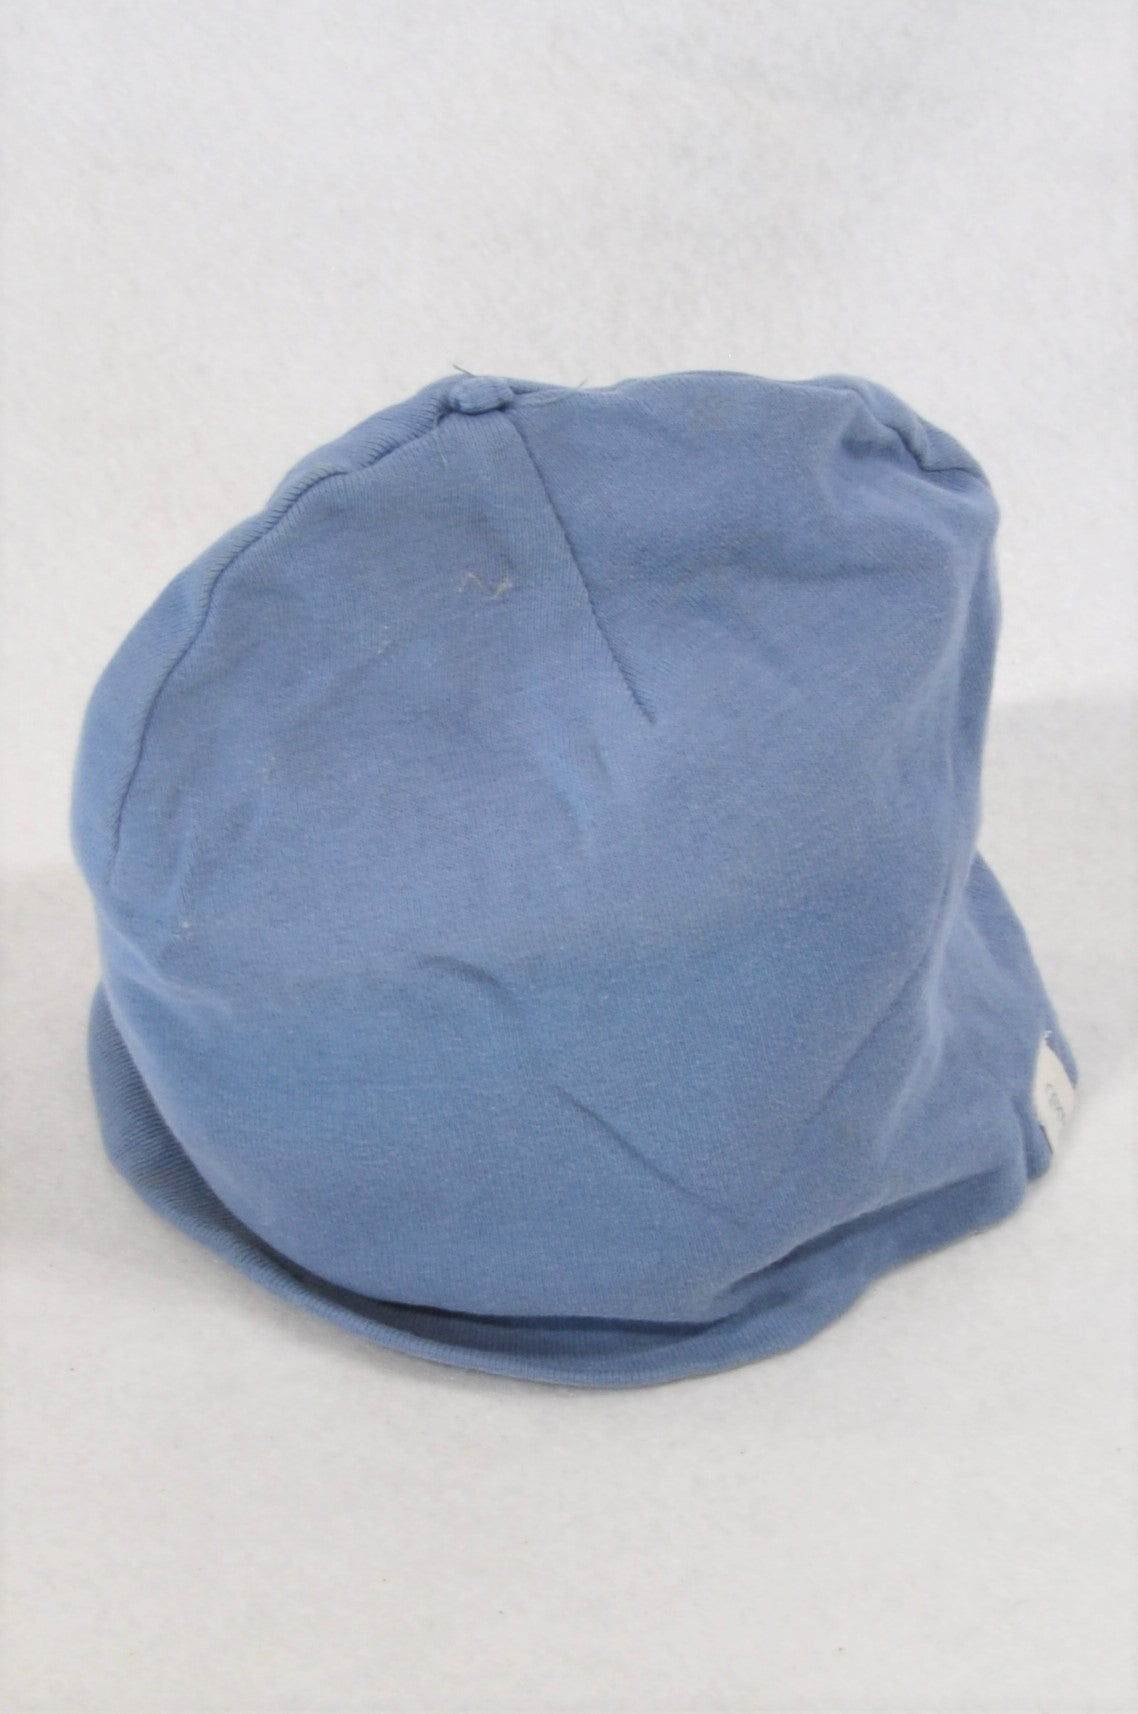 H&M Dusty Blue Organic Cotton Beanie Unisex 4-6 months